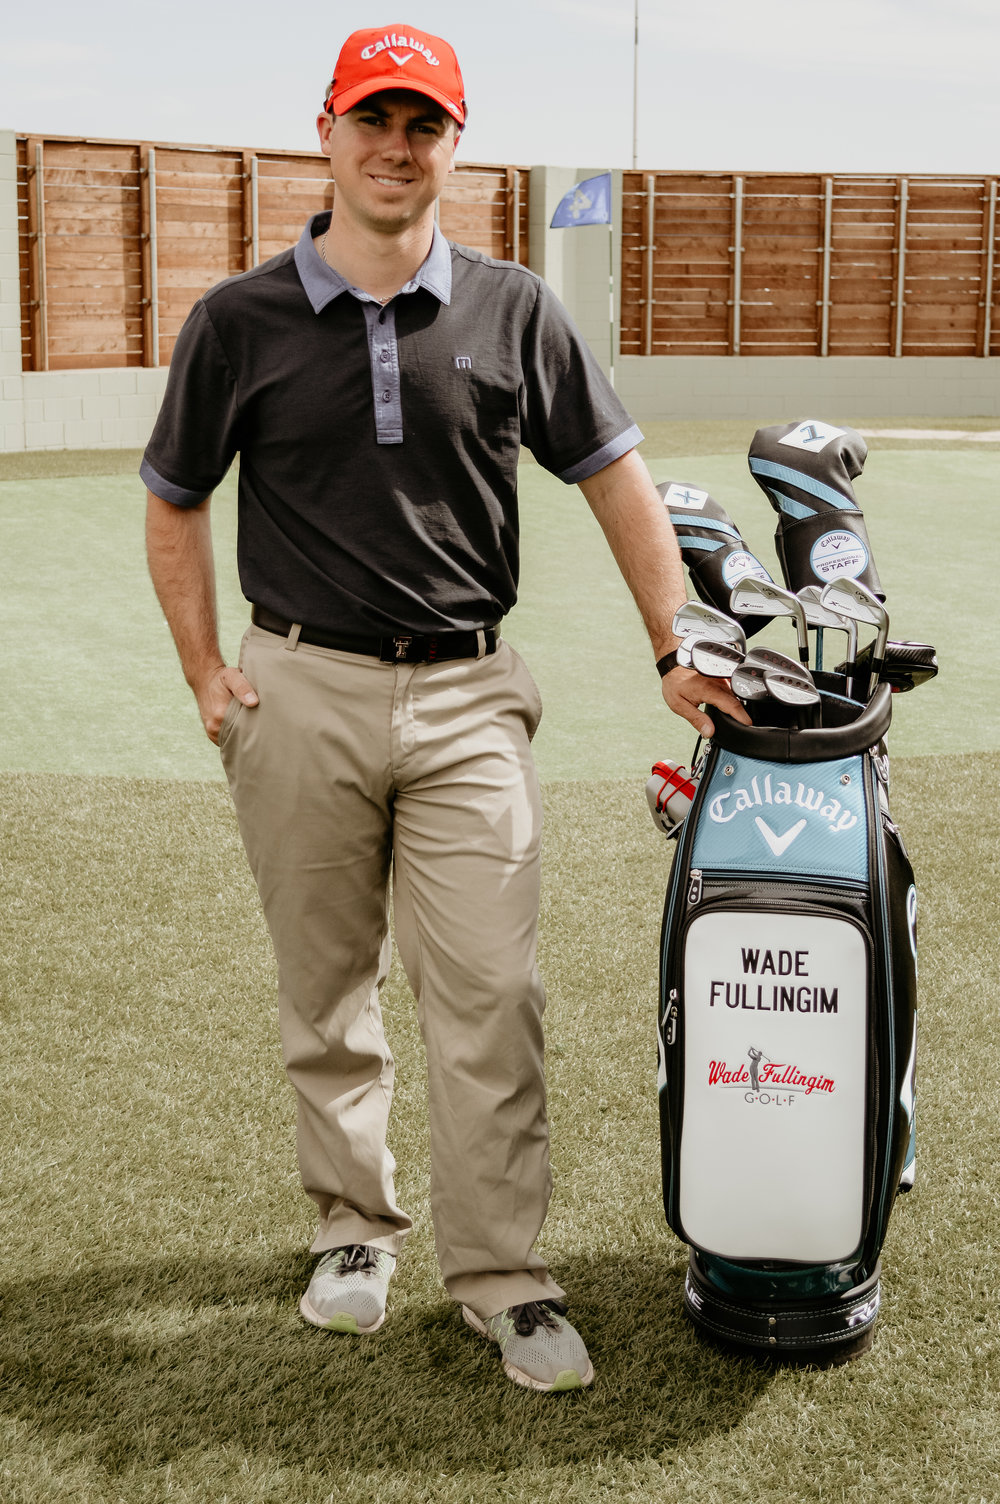 Meet Wade  - PGA Apprentice/Teaching ProfessionalWade grew up playing golf at an early age of 10 years old. He played competitive golf for 12 years as a junior and had great success. In 2012 he started teaching at Lubbock Country Club in Lubbock, Texas. He dedicated himself to learning how to become the best teacher/coach he could be. He holds over 10 certifications in the golf industry and he obtained them all in less than 5 Years. Wade is dedicated to improving your game by the passion he brings. No one love what they do more than Wade.